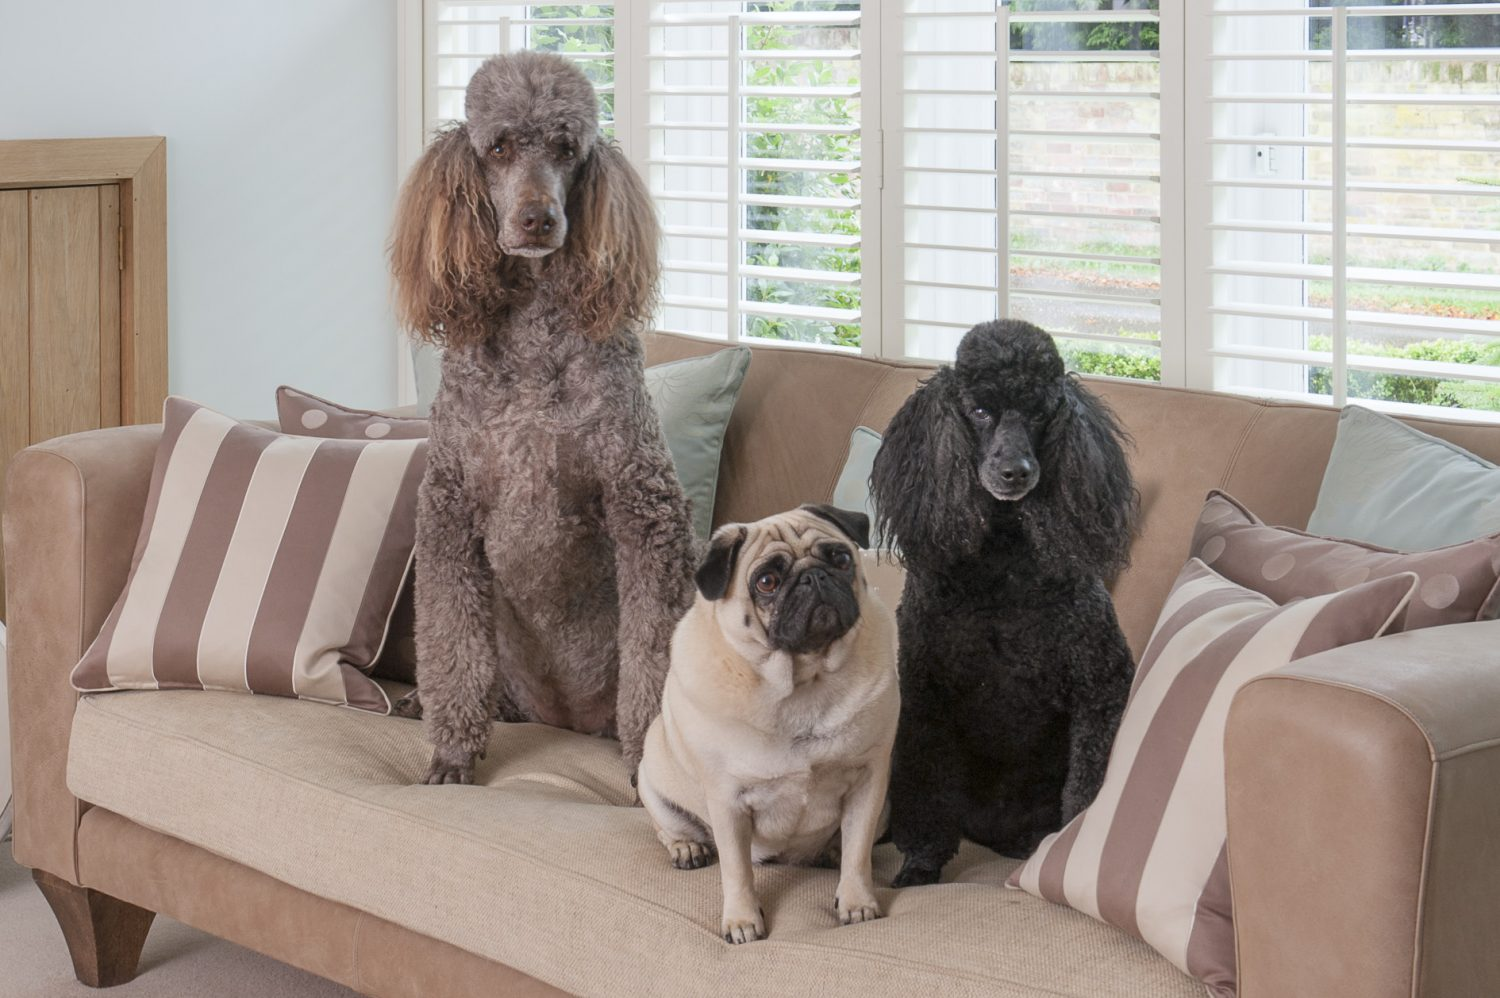 Coco, Violet and LuLu pose for a photograph